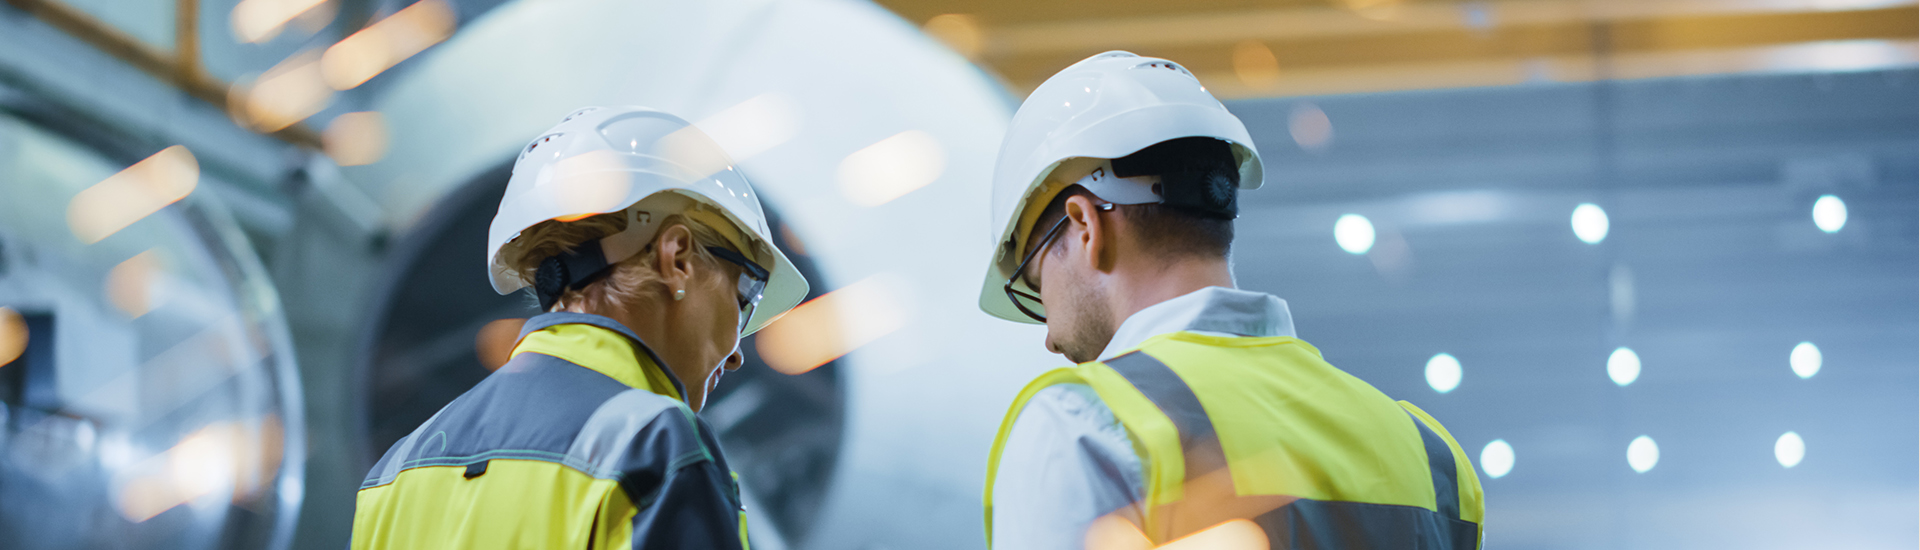 Manufacturers: Are You Tired of Employee Attrition? Take These Three Critical Steps.